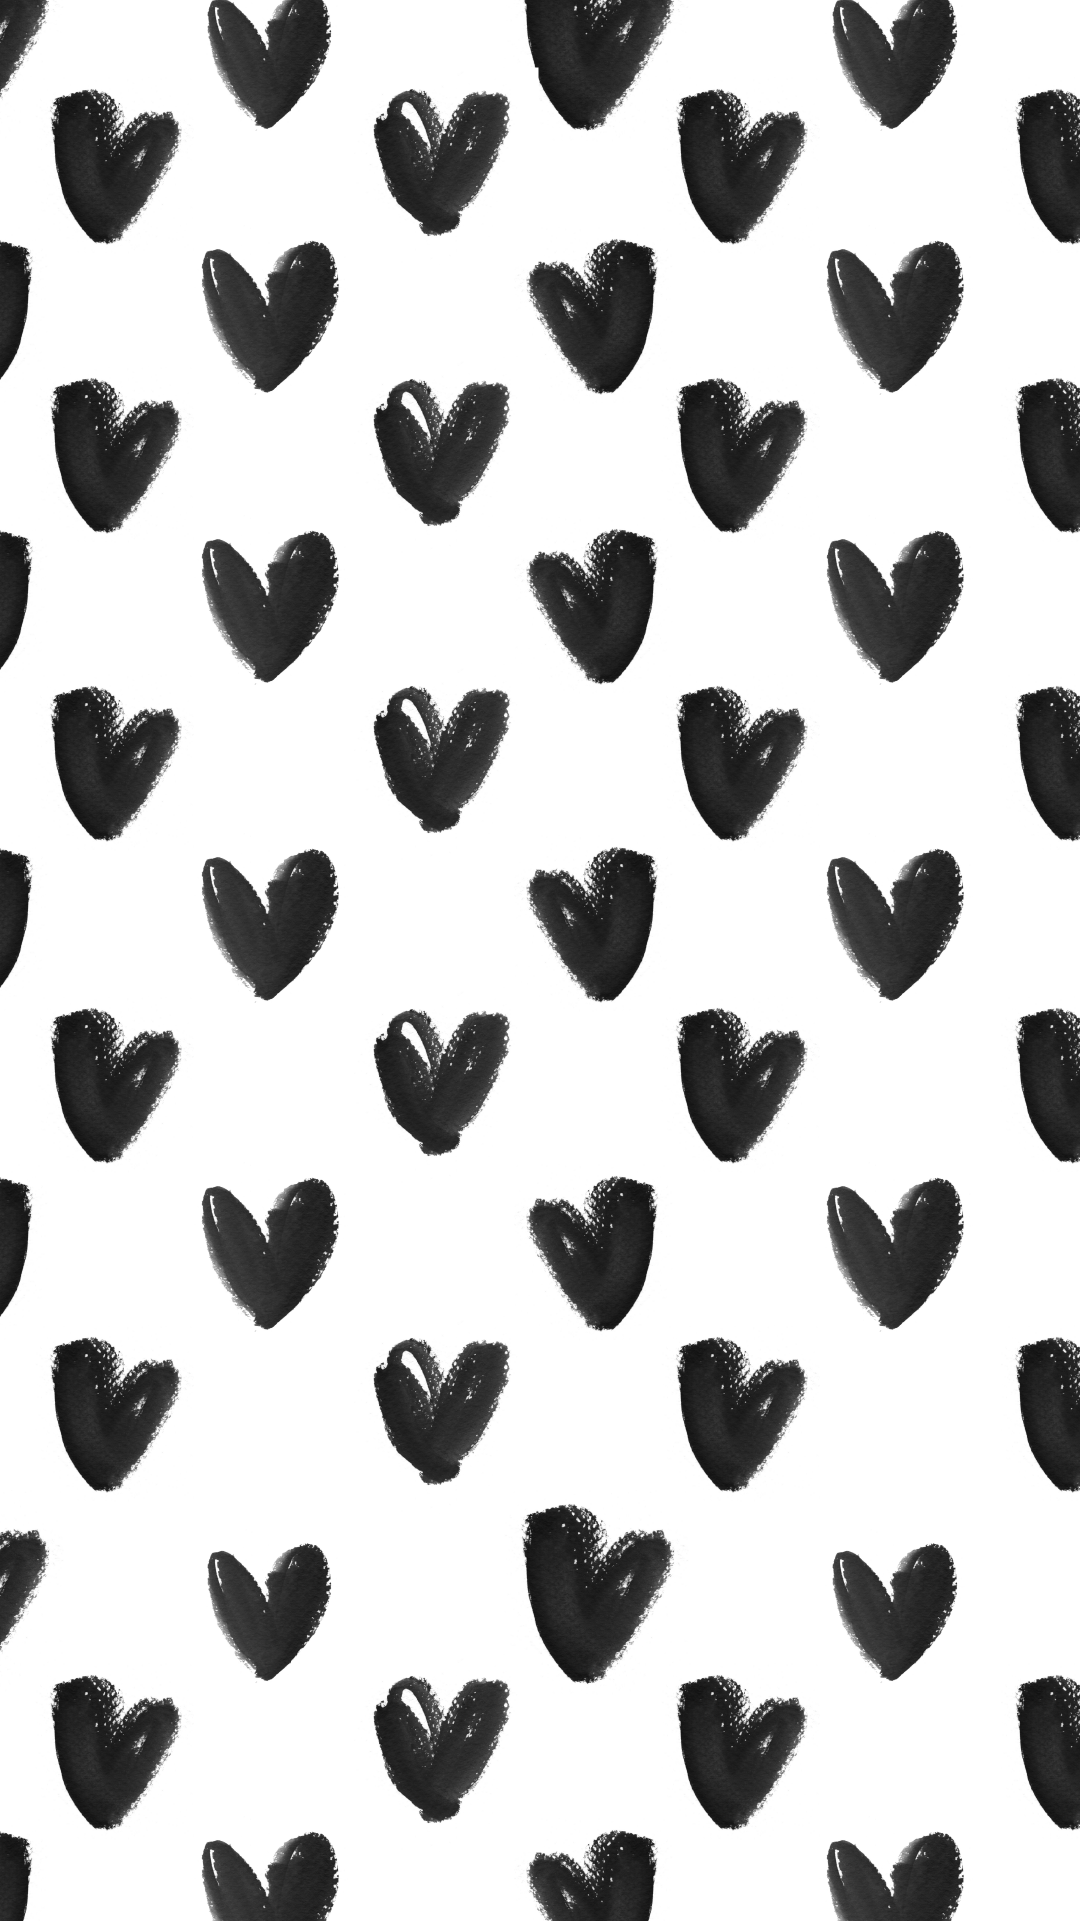 Black White Heart Pattern Monochrome Print Design Design Inspiration For Creatives Iphone Background Wallpaper Iphone Background Screen Wallpaper